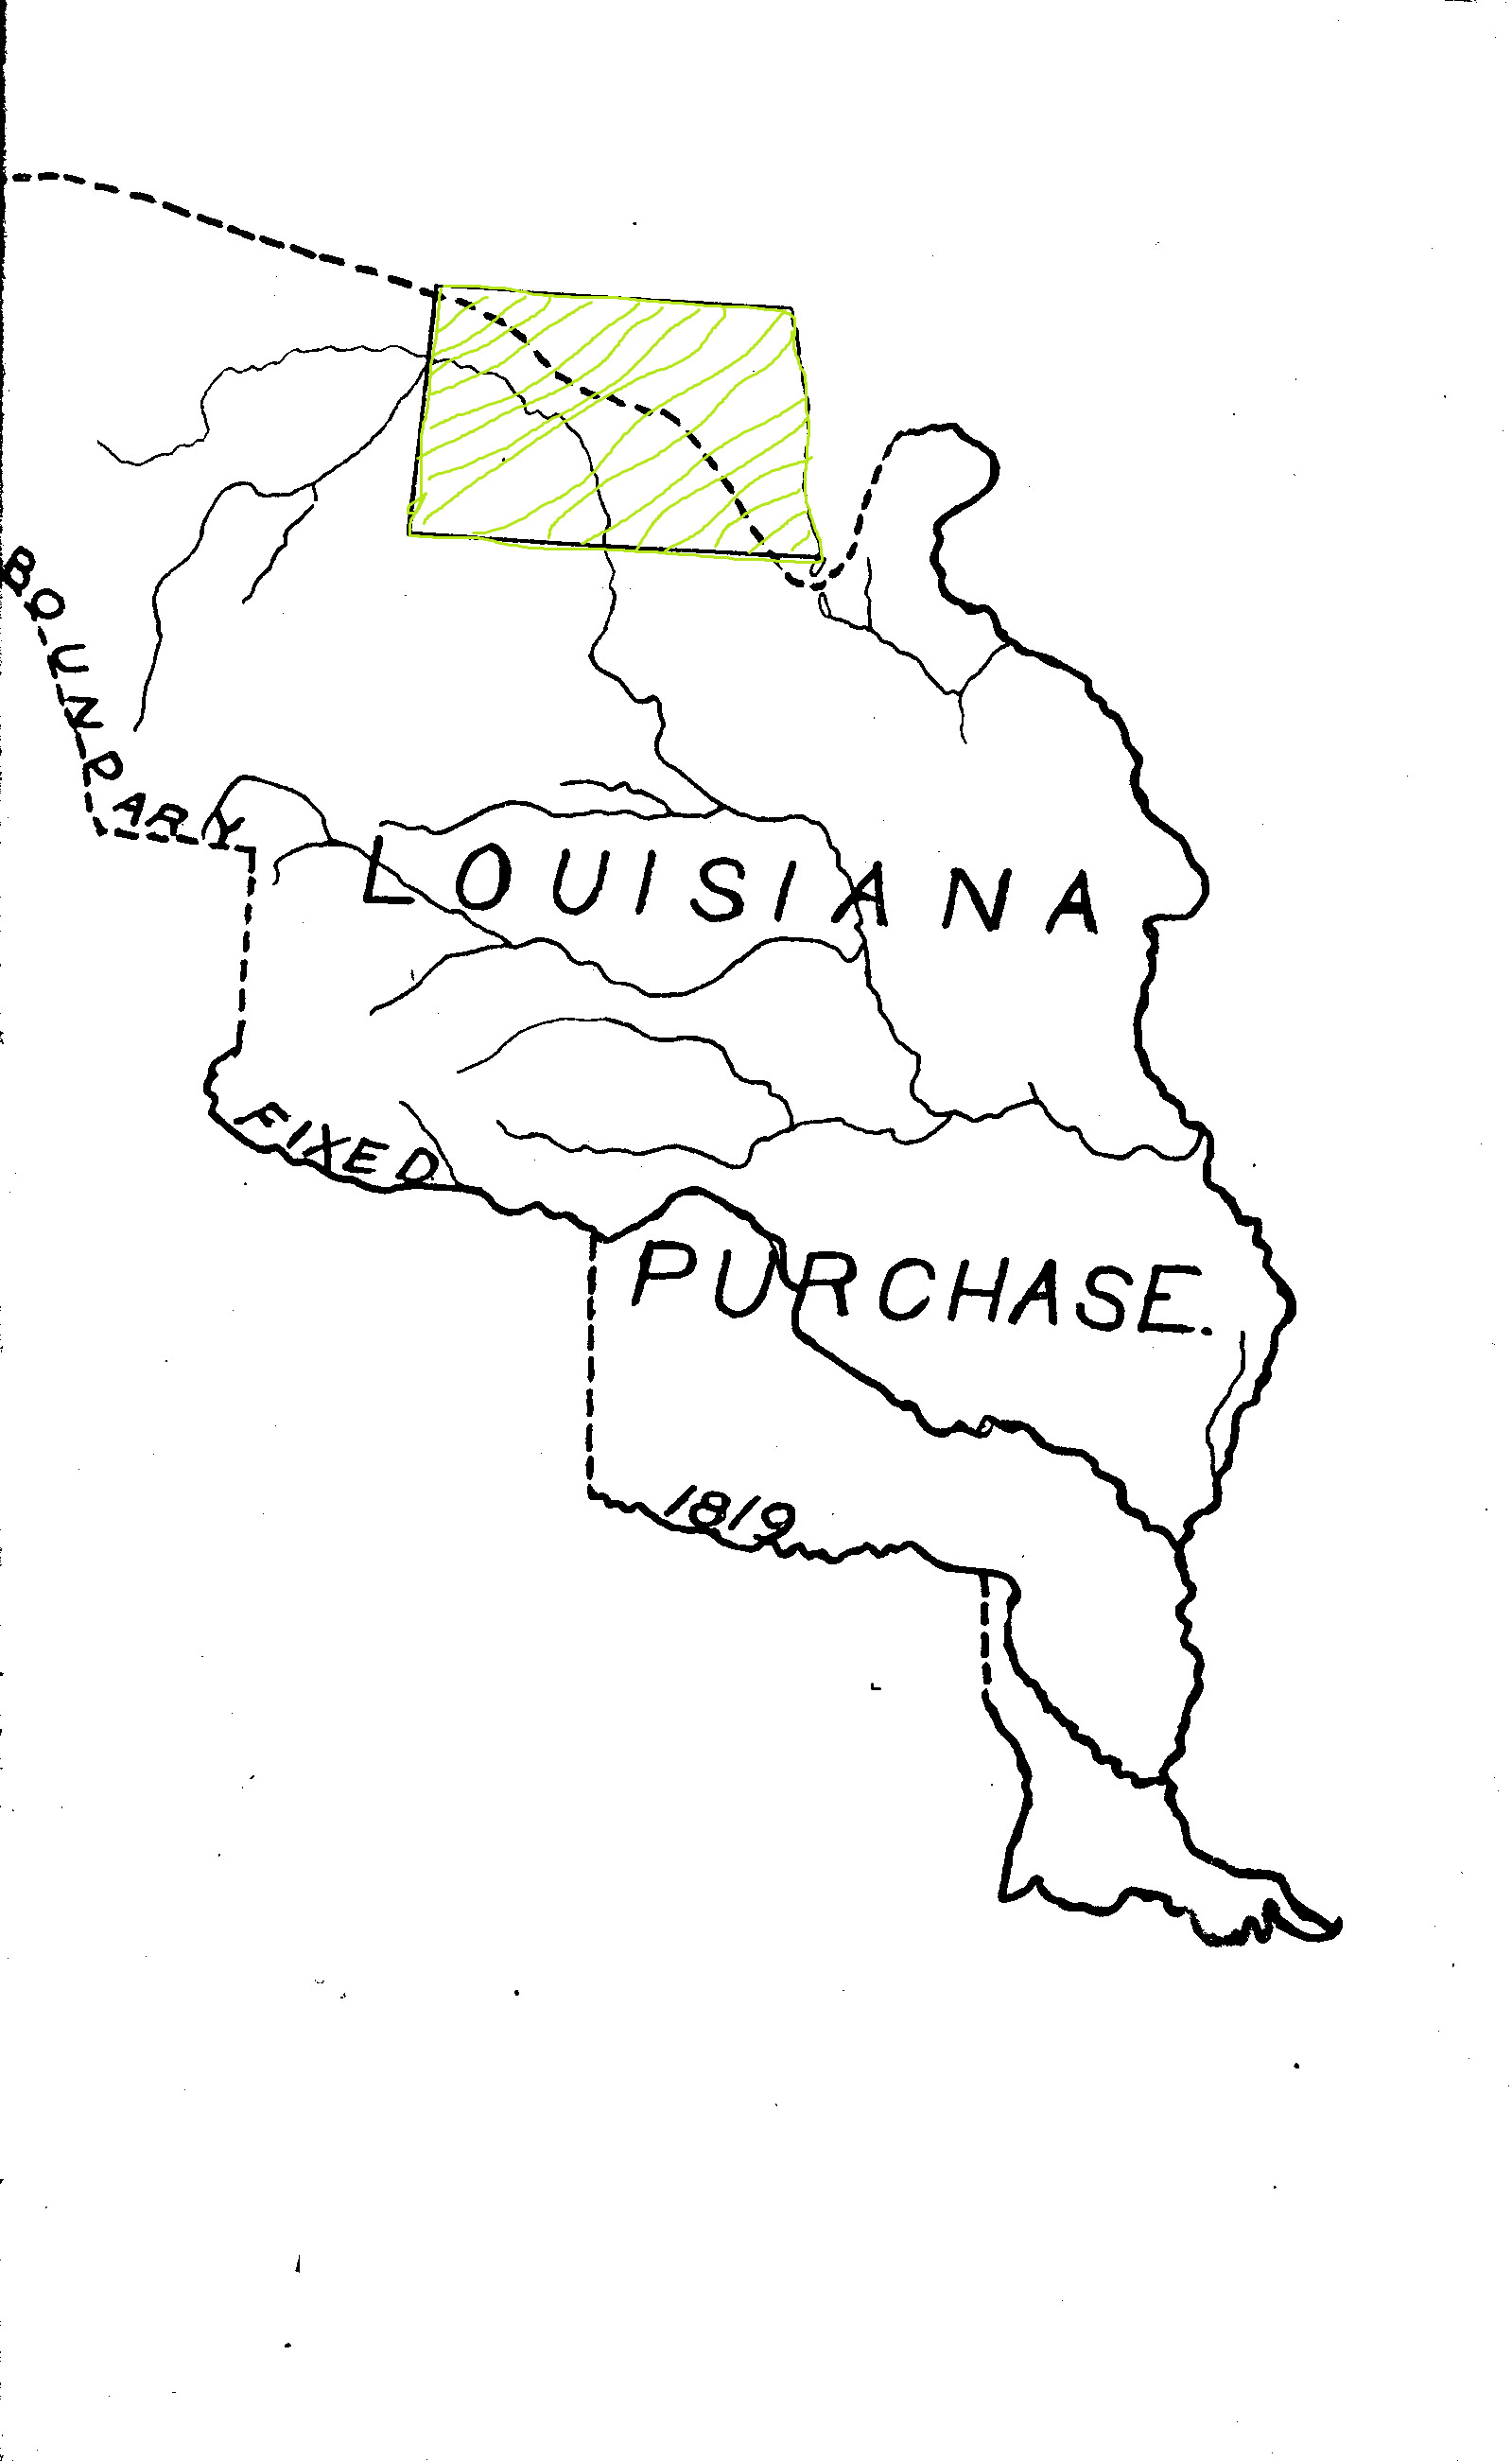 The Louisiana Purchase (1803) was defined as the drainage of the Missouri River and its tributaries. The eastern portion of North Dakota drains into the Red River.